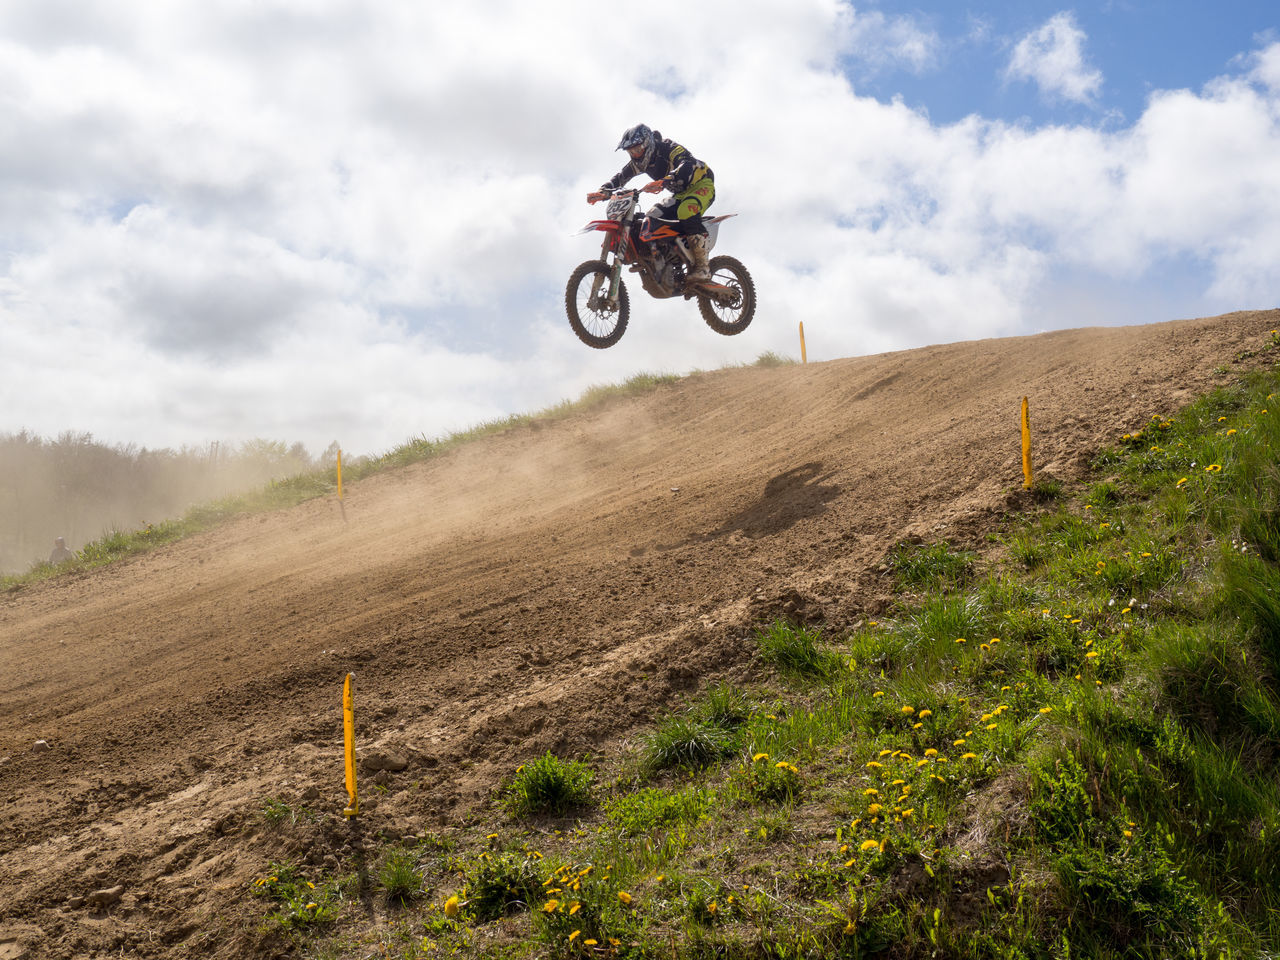 motocross, sports race, real people, extreme sports, motorsport, motorcycle, men, crash helmet, land vehicle, mid-air, speed, off-road vehicle, mode of transport, riding, cloud - sky, sky, adventure, one person, competitive sport, field, motorcycle racing, transportation, day, outdoors, sports track, leisure activity, stunt, sports clothing, sport, jumping, competition, lifestyles, headwear, helmet, professional sport, biker, people